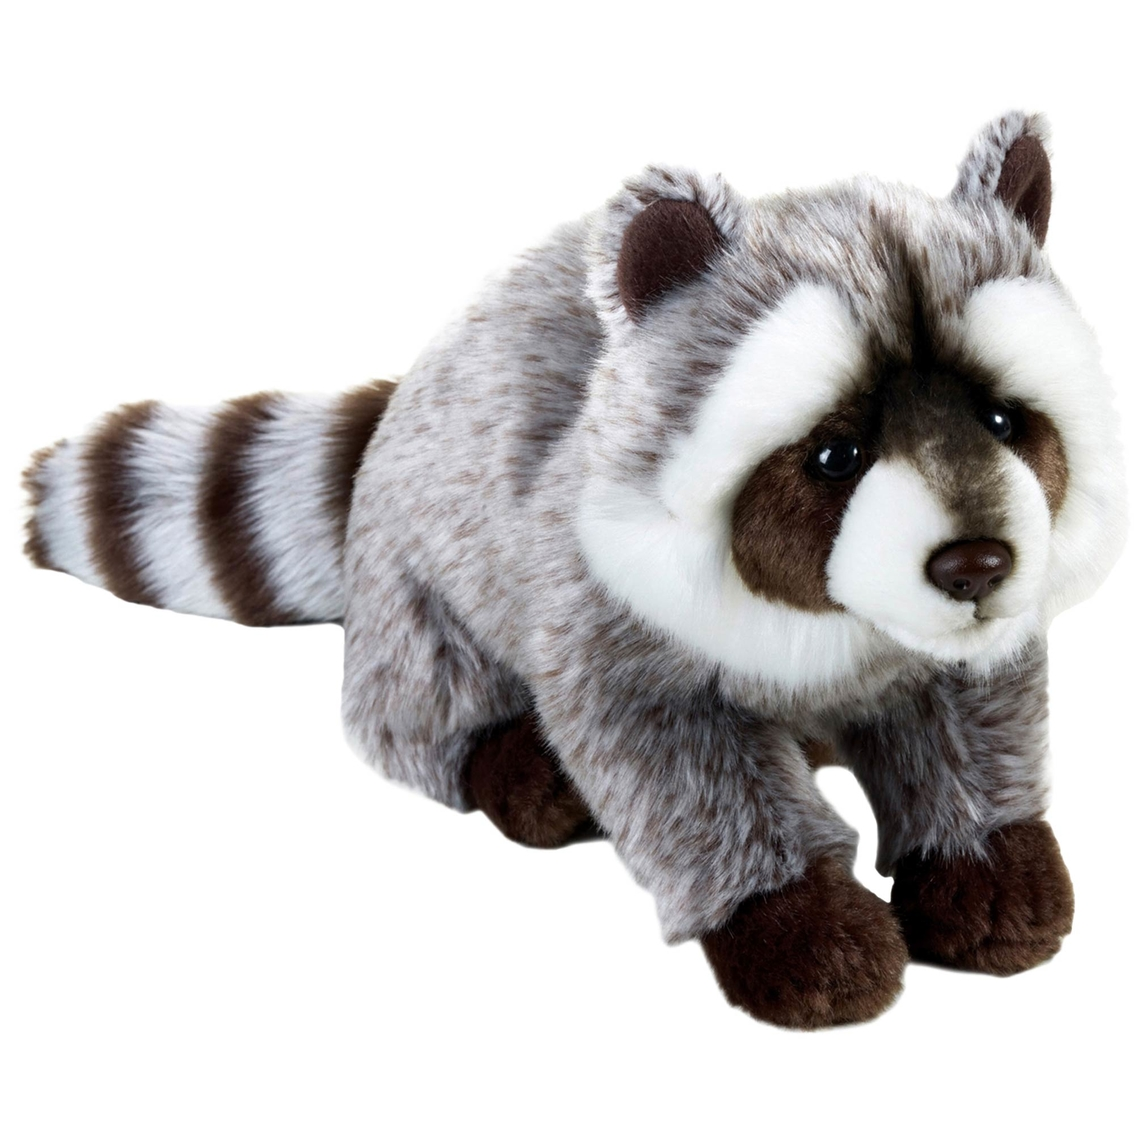 National Geographic Plush Raccoon Stuffed Toys Baby Toys